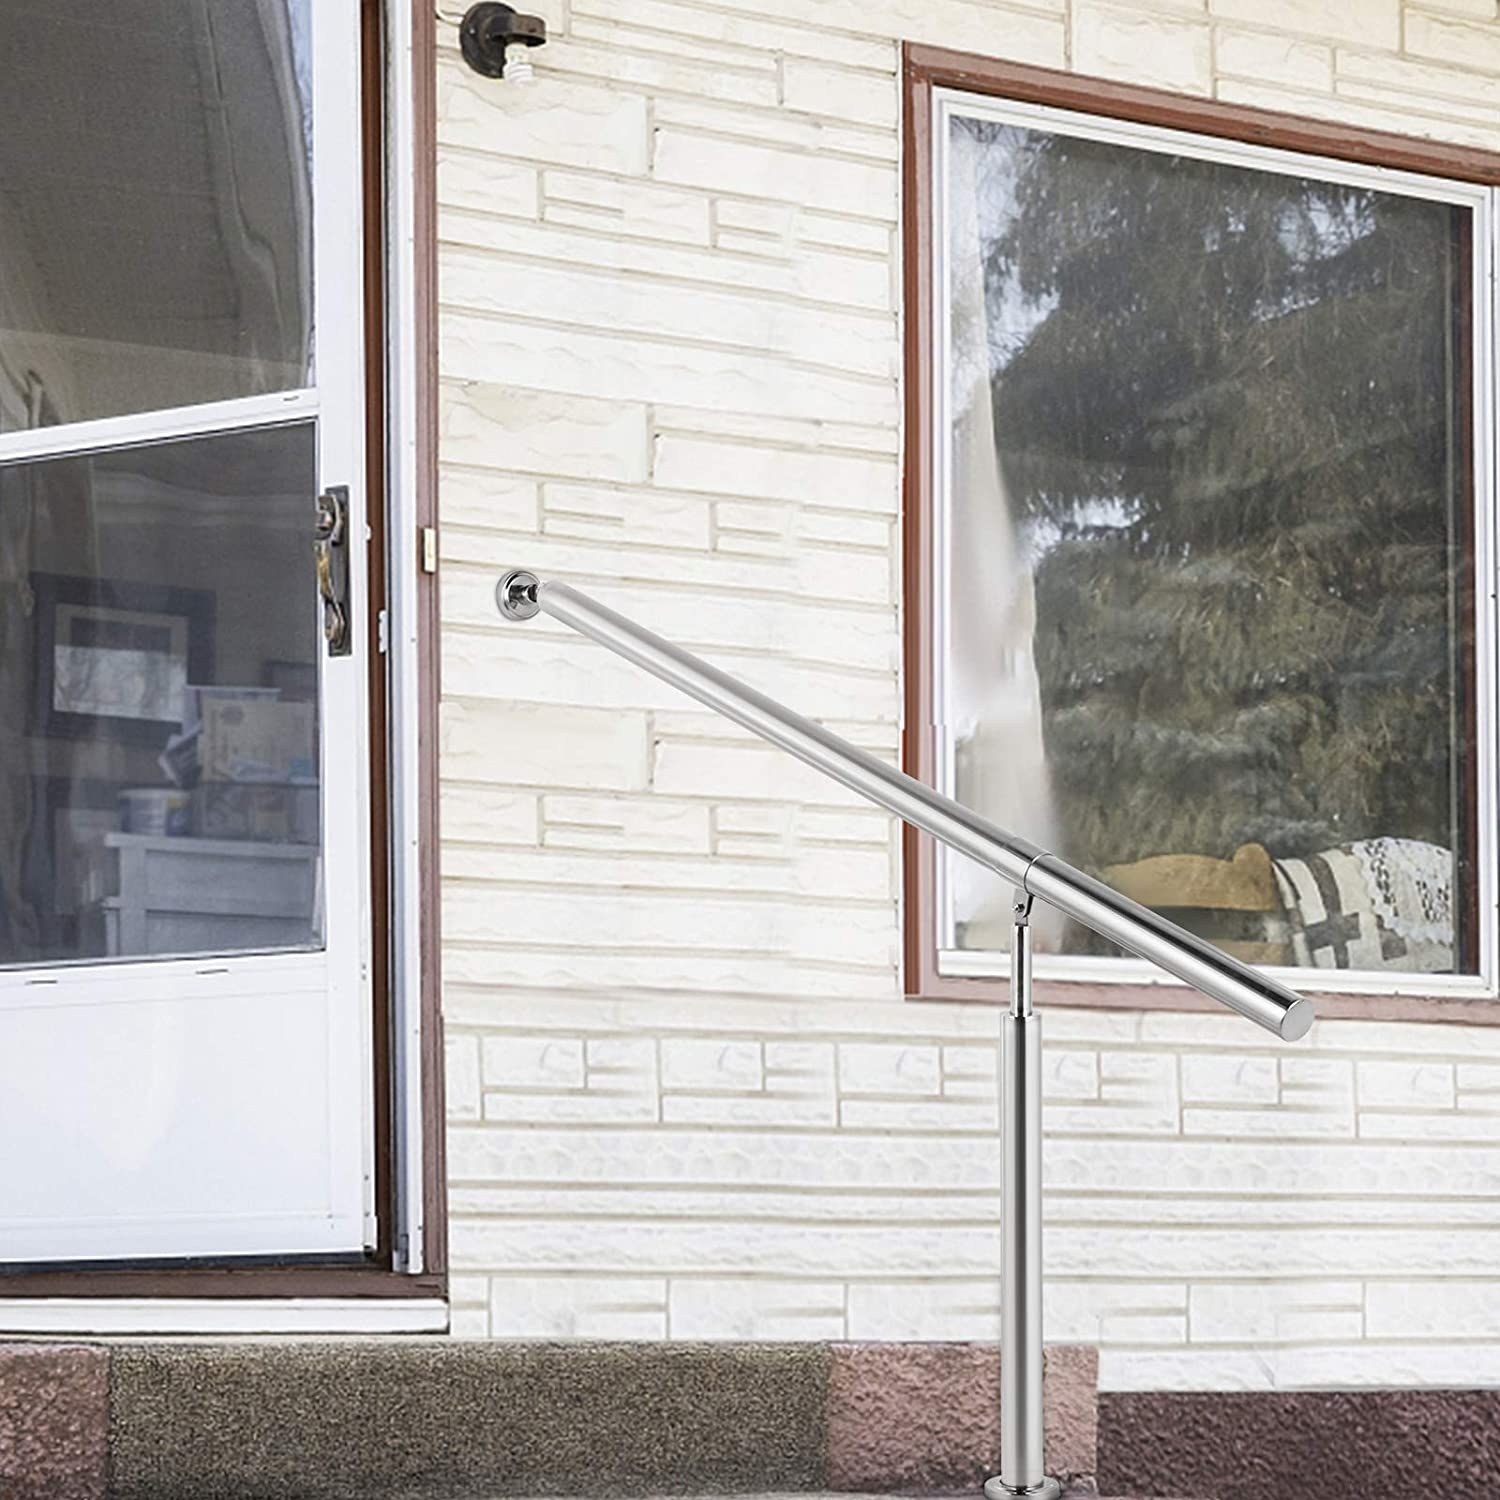 Happybuy Step Handrail Stainless Steel Stair Railing For In And | Outside Stair Railing Installation | Rail | Simple | Staircase | Back Porch | Sunroom